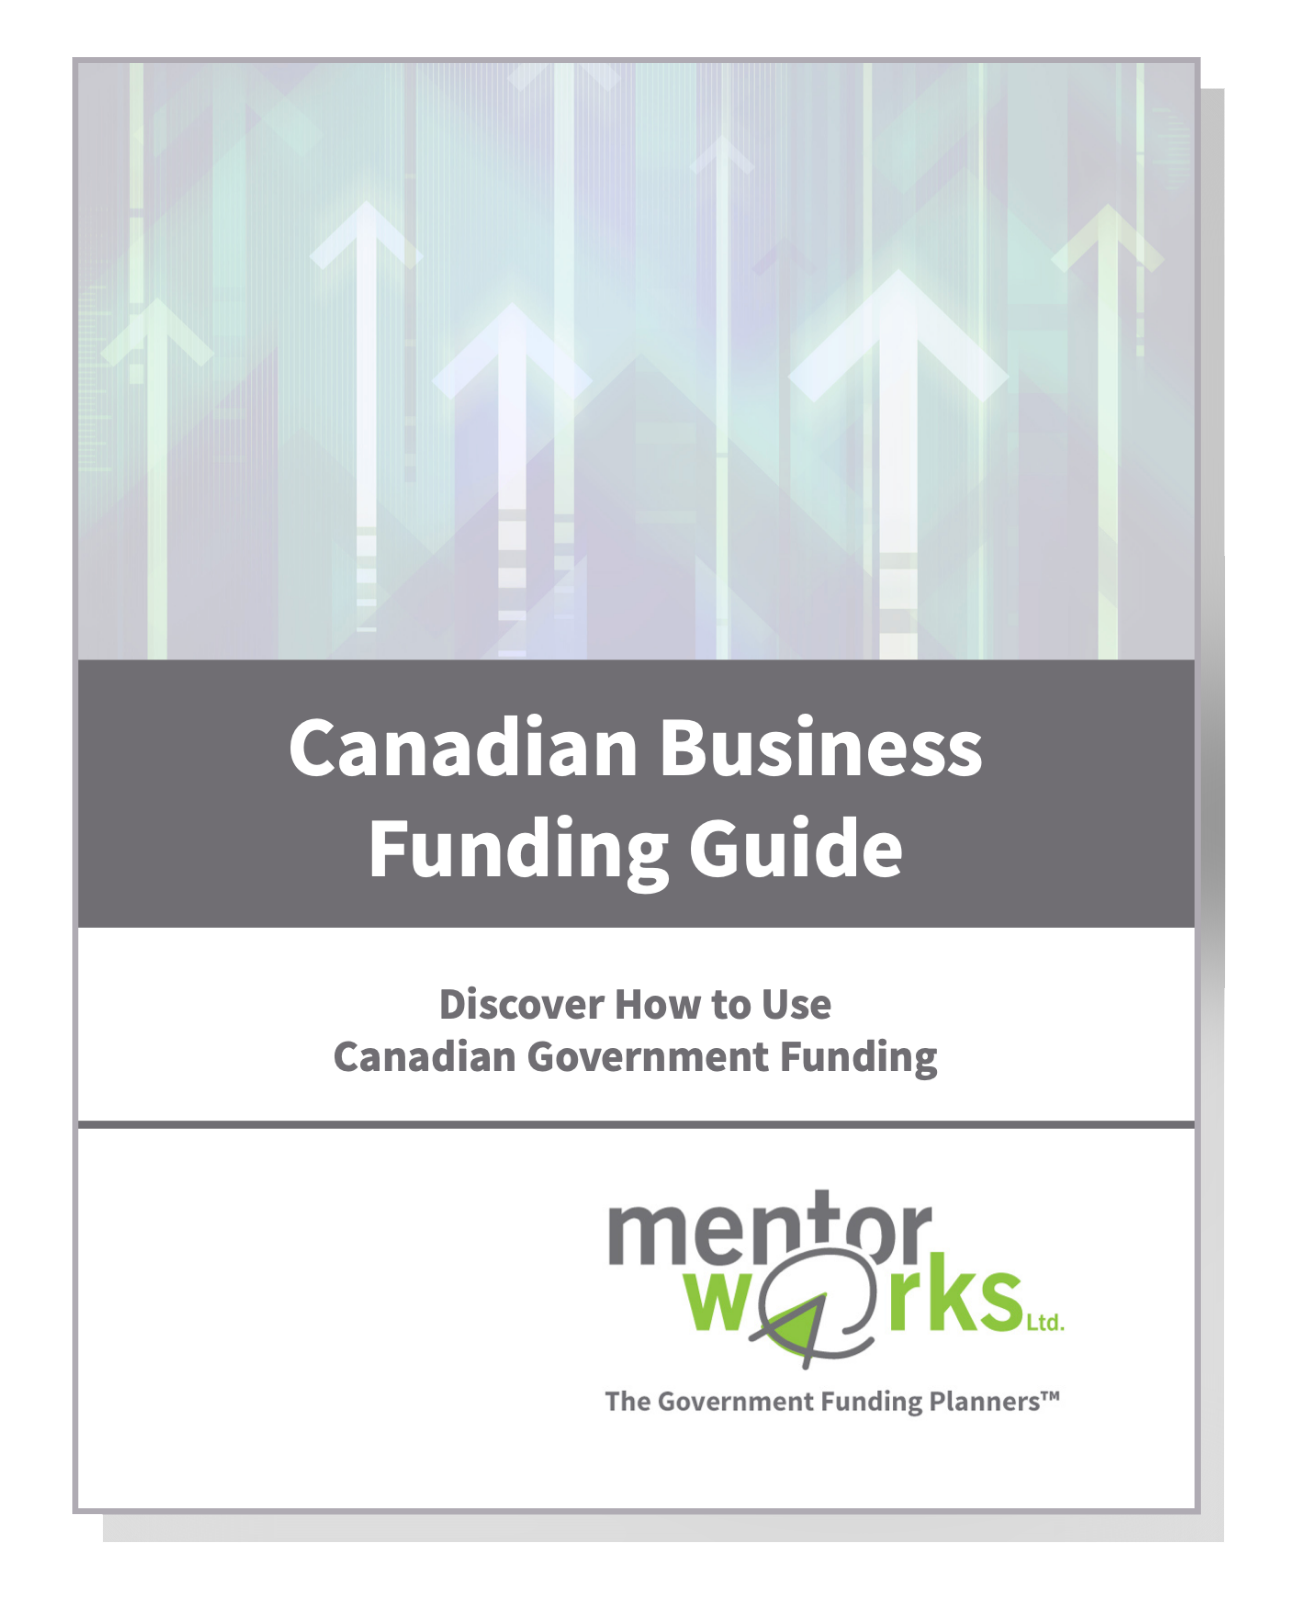 Canadian Business Funding Guide Drop Shadow-1